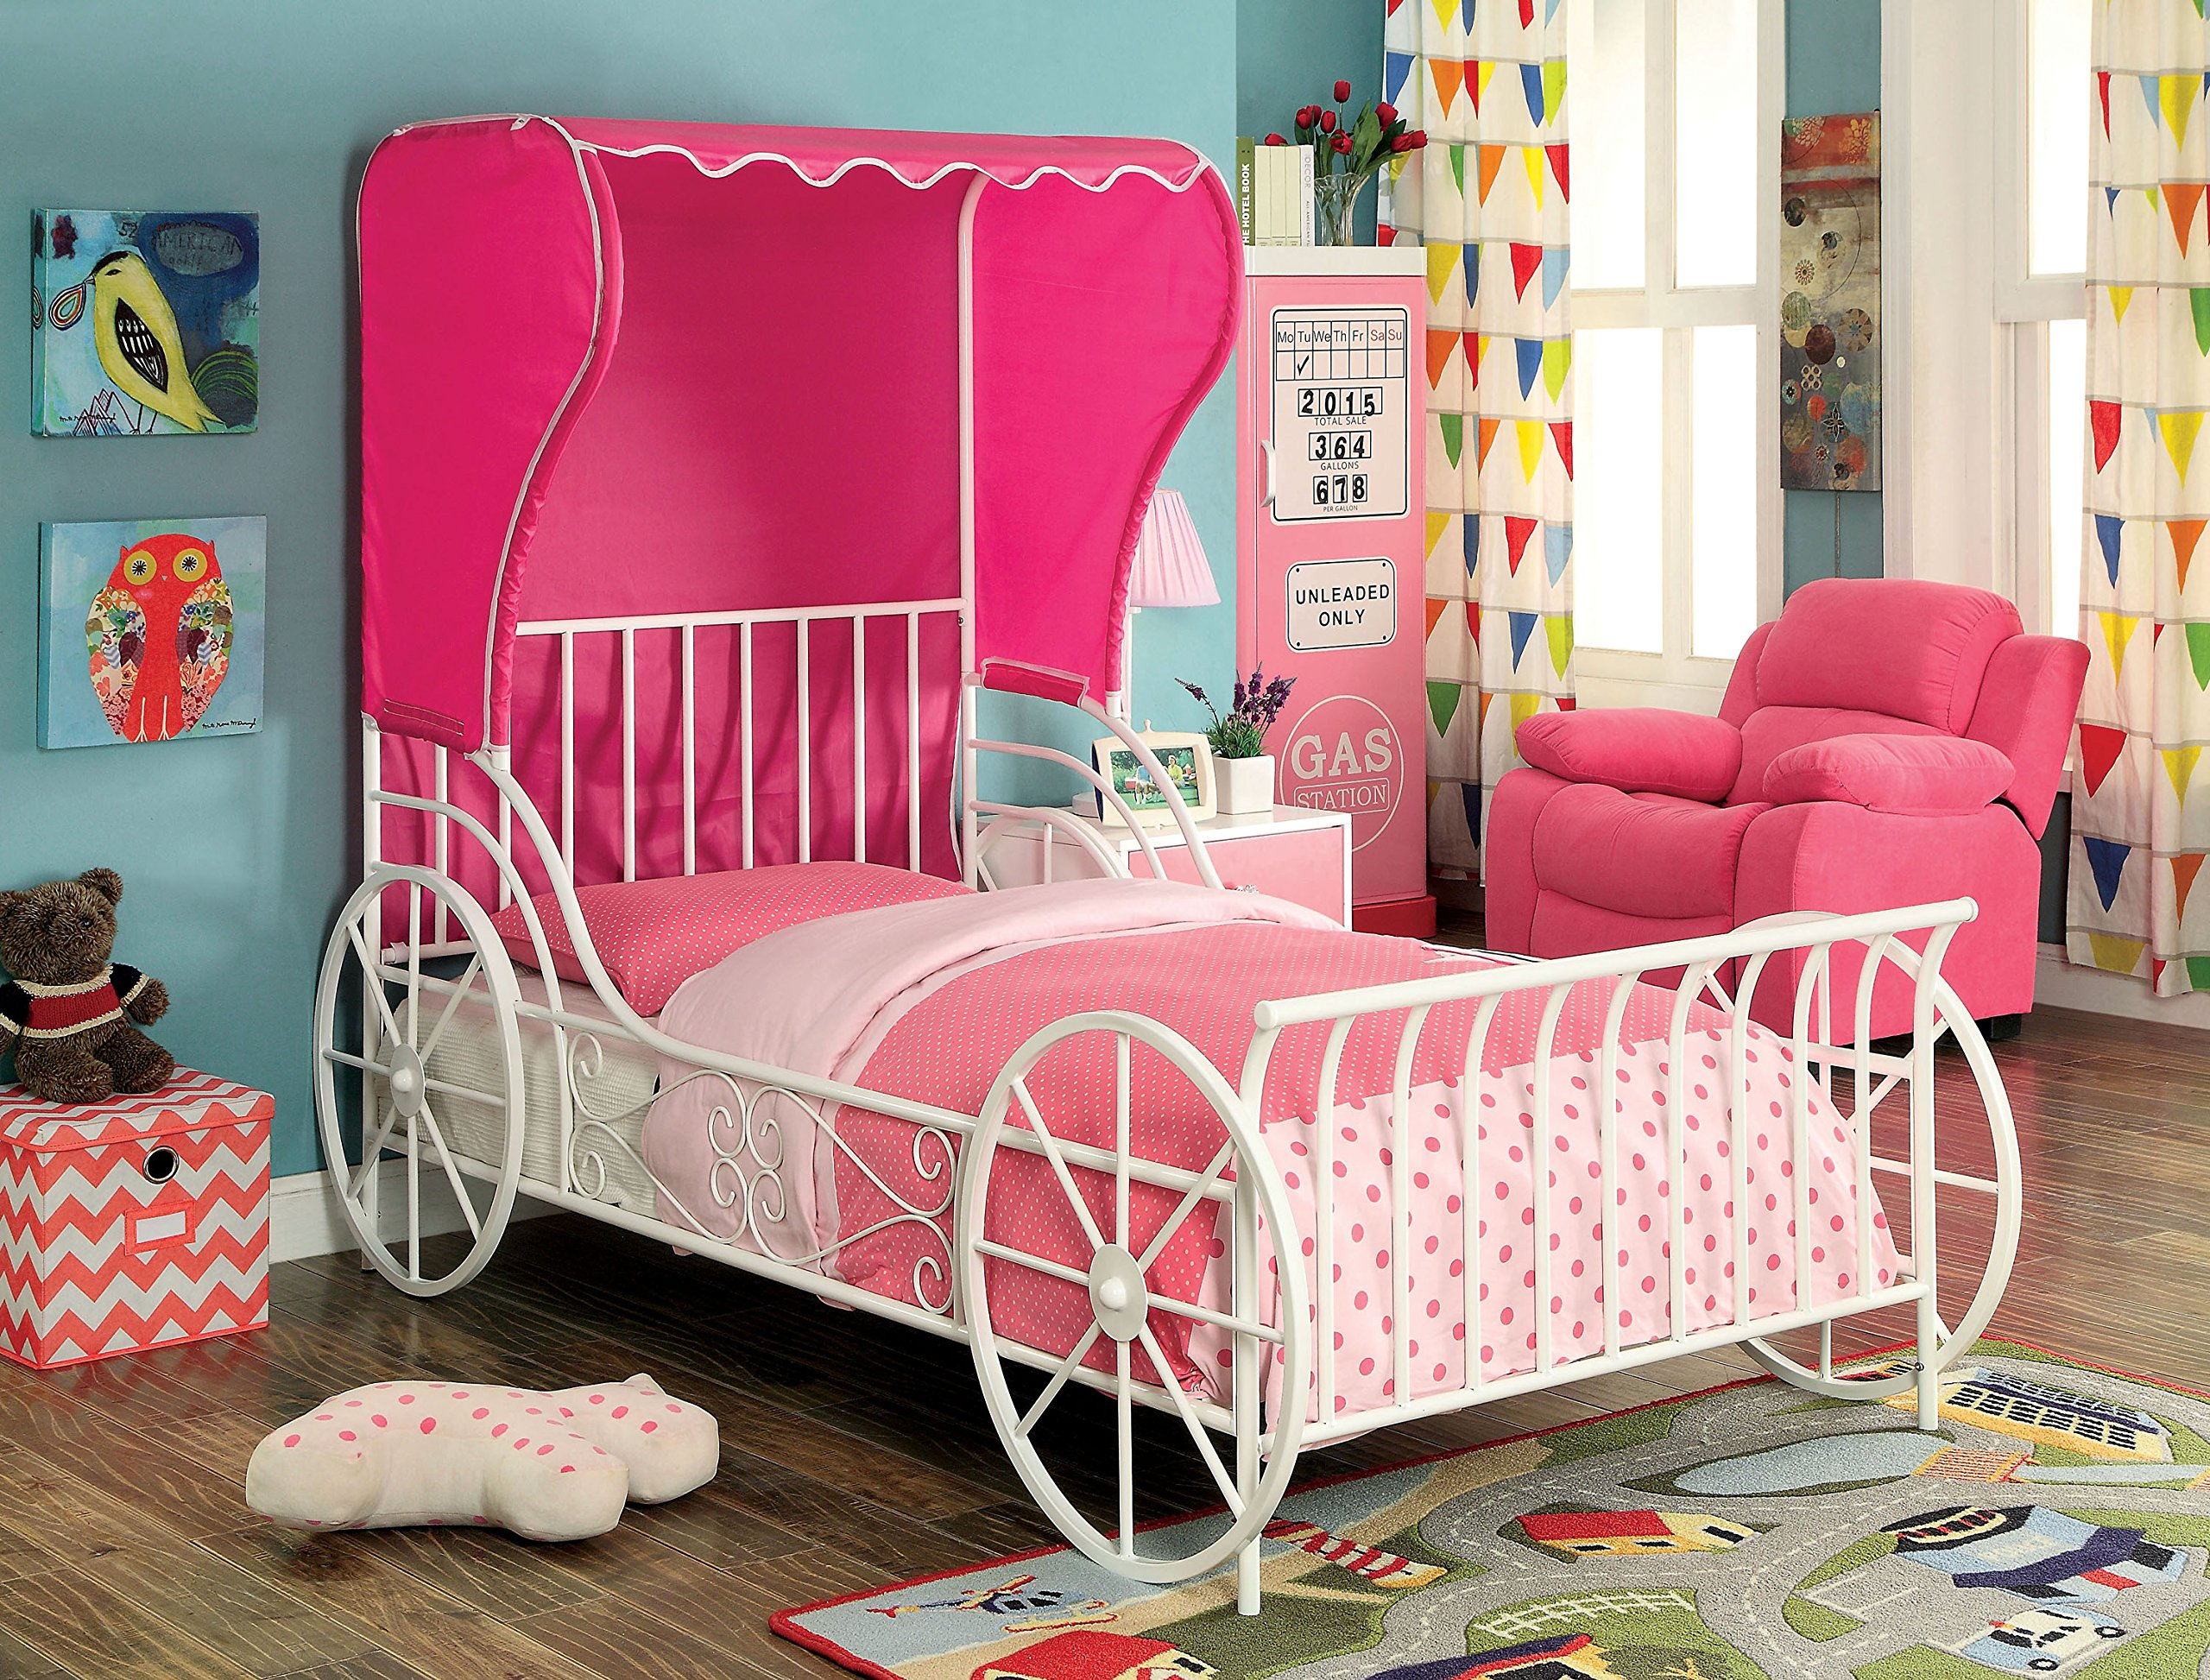 HOMES: Inside + Out IDF-7715T Rane Novelty Bed Childrens Frames, Twin